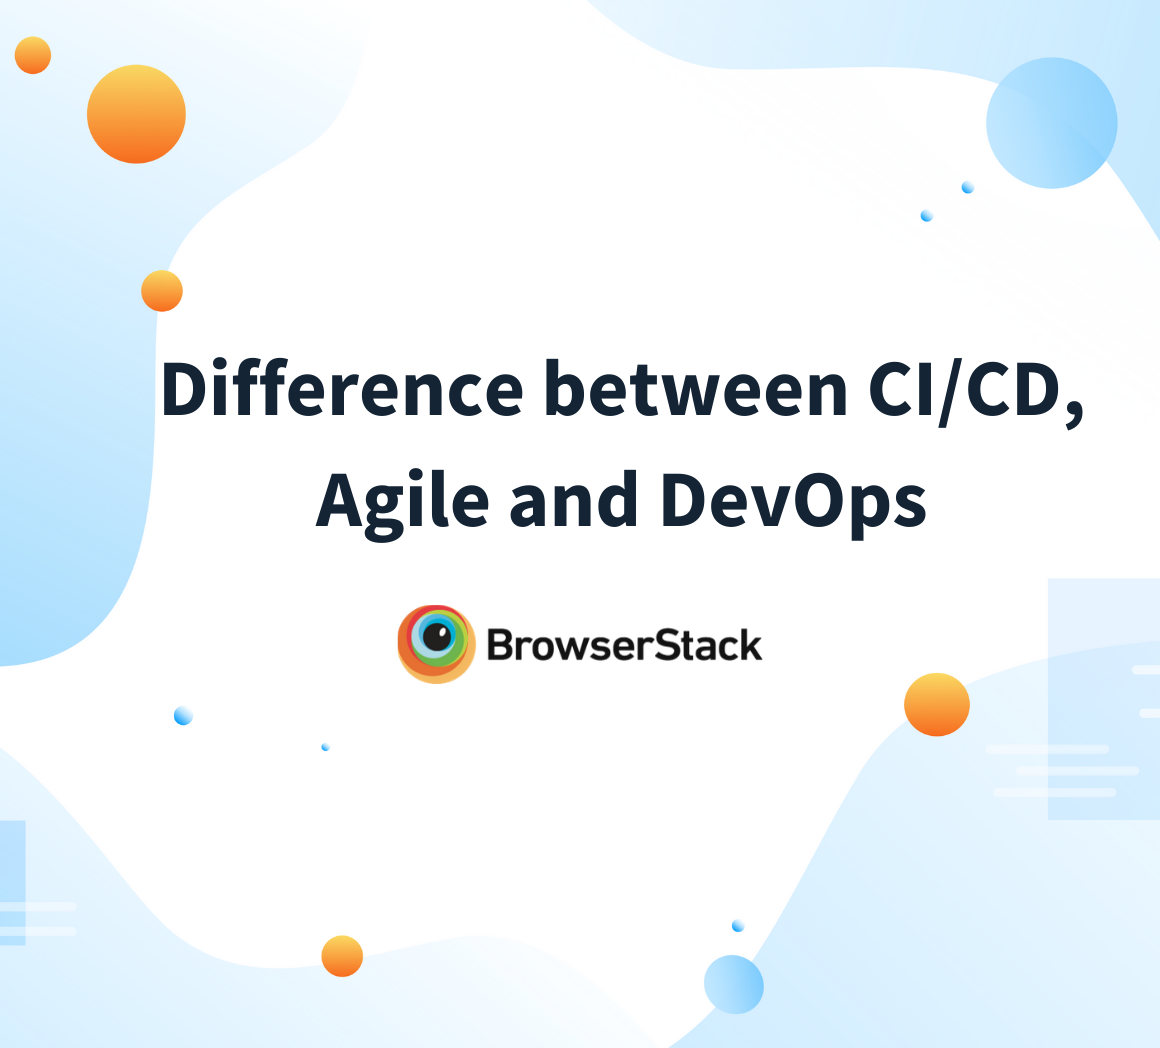 Differences between CI/CD, Agile and DevOps